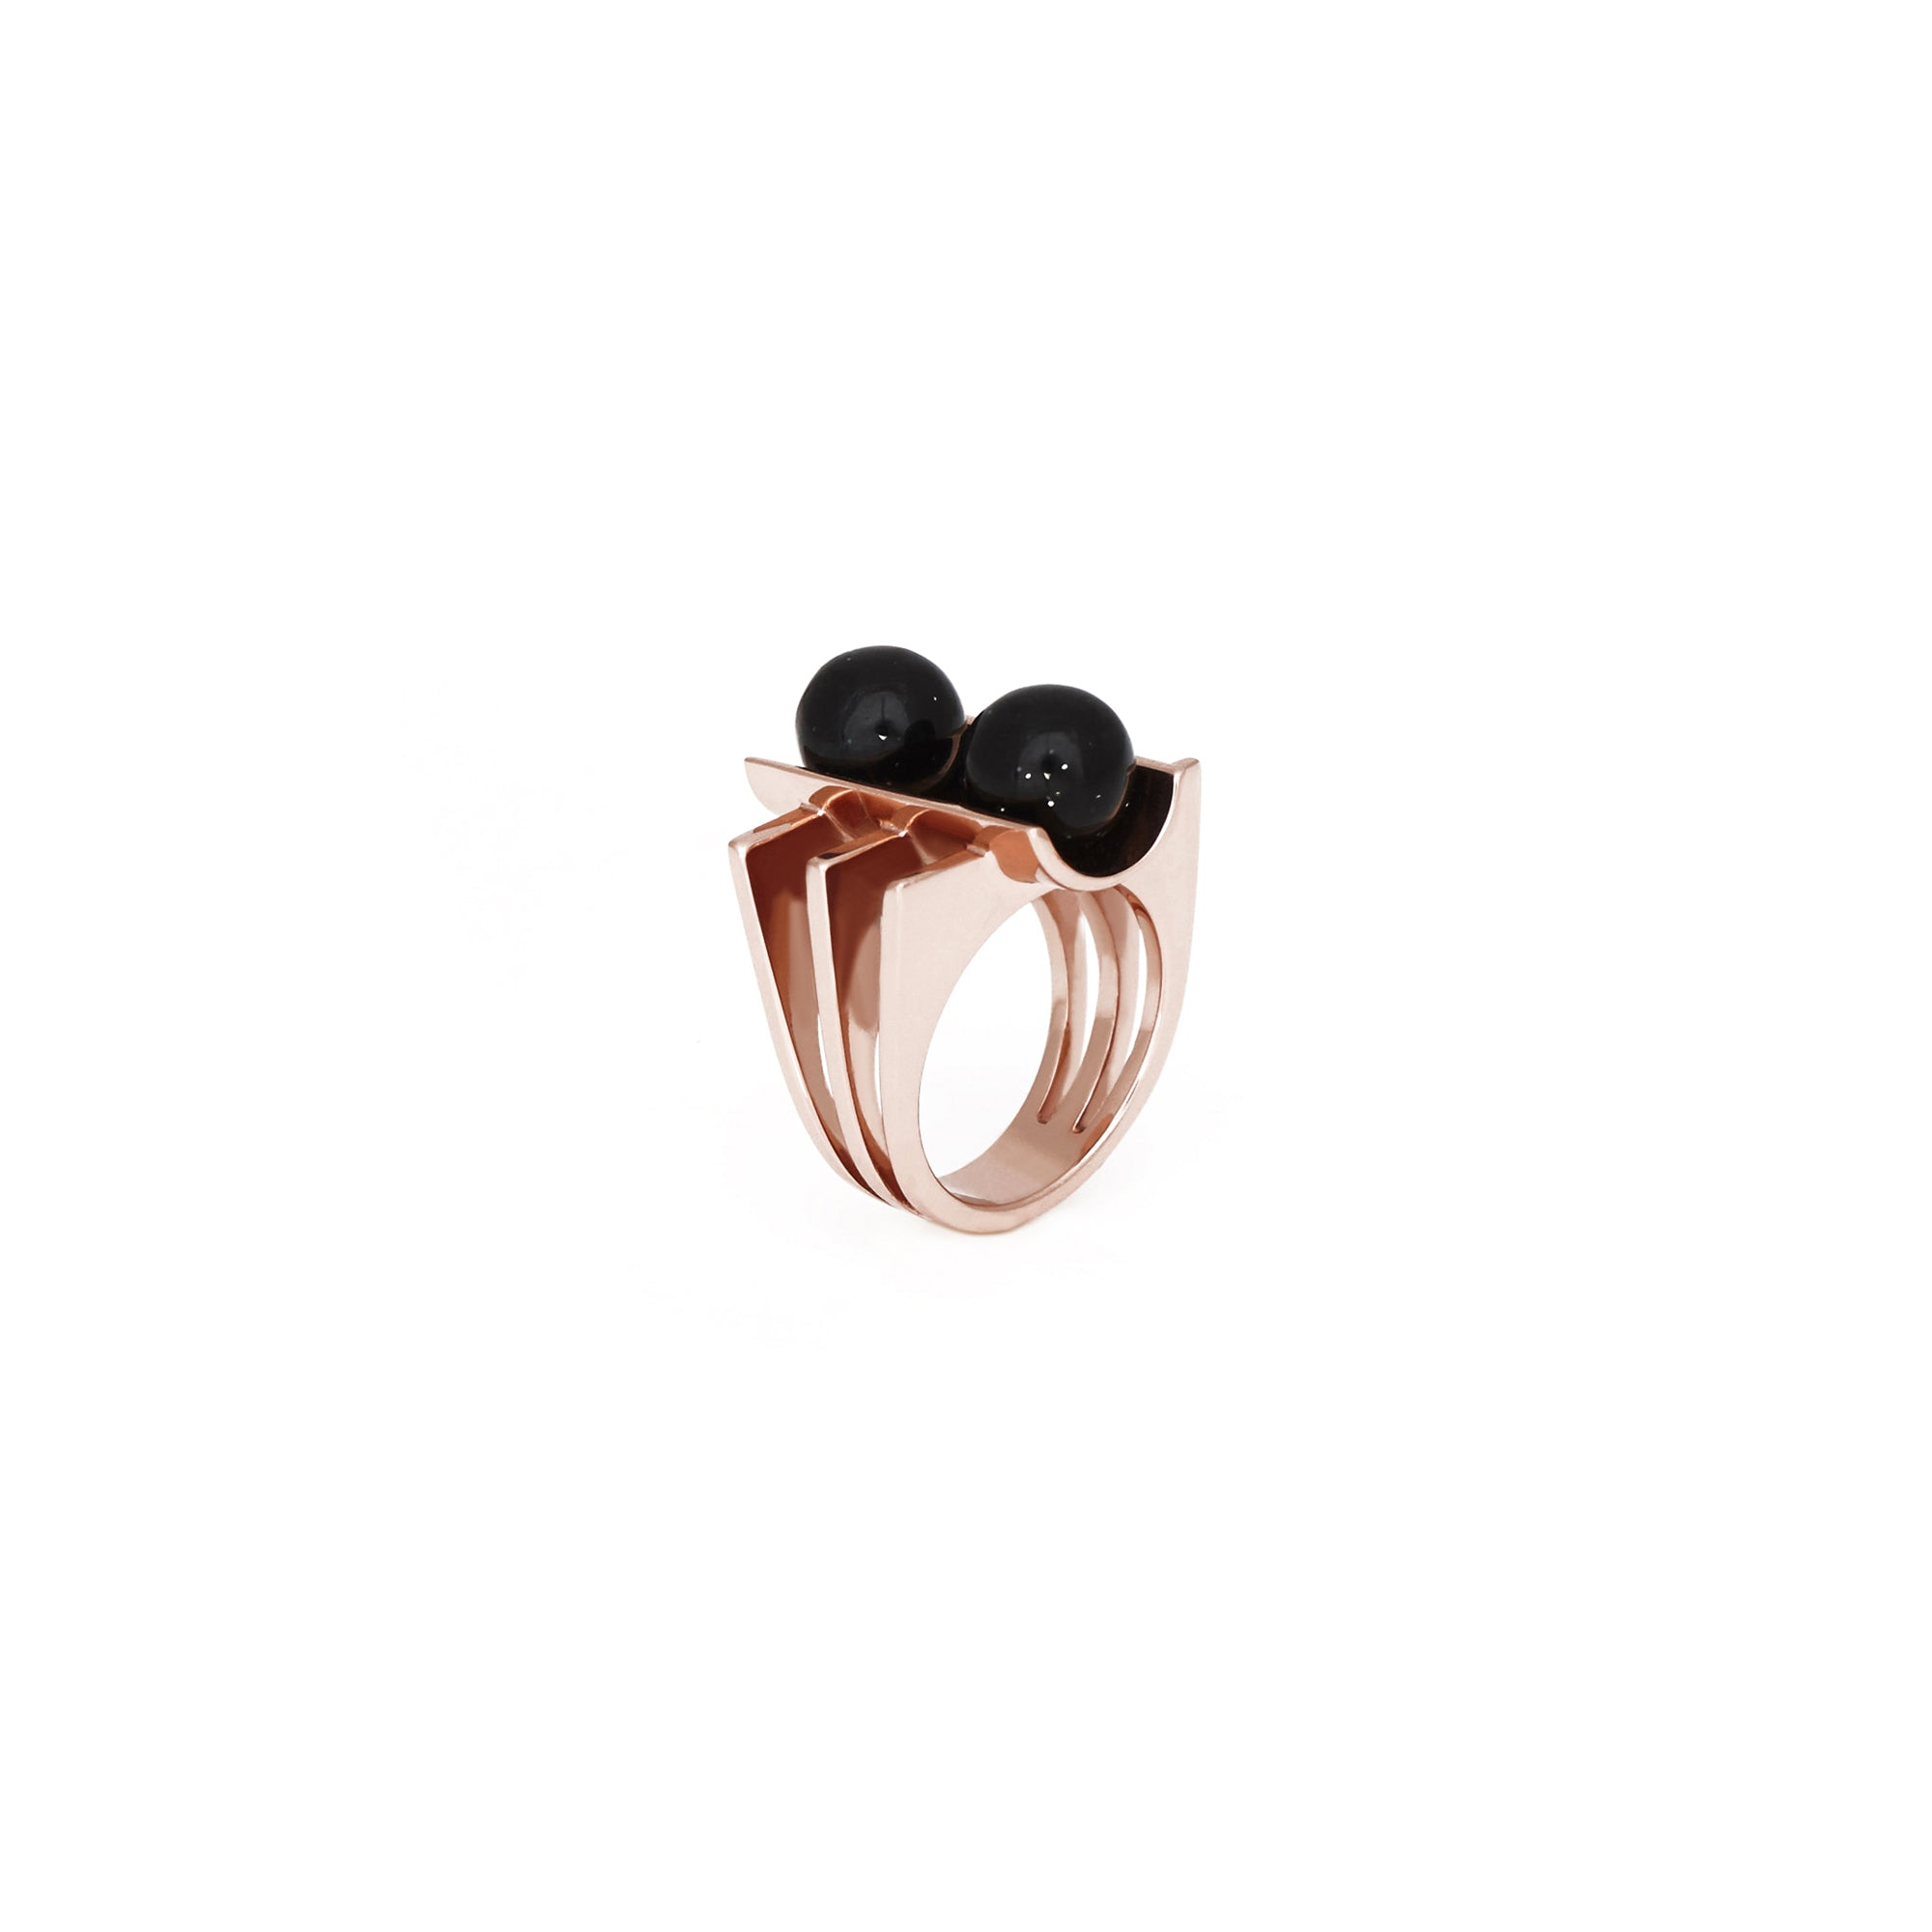 Century Ring - Goldstone